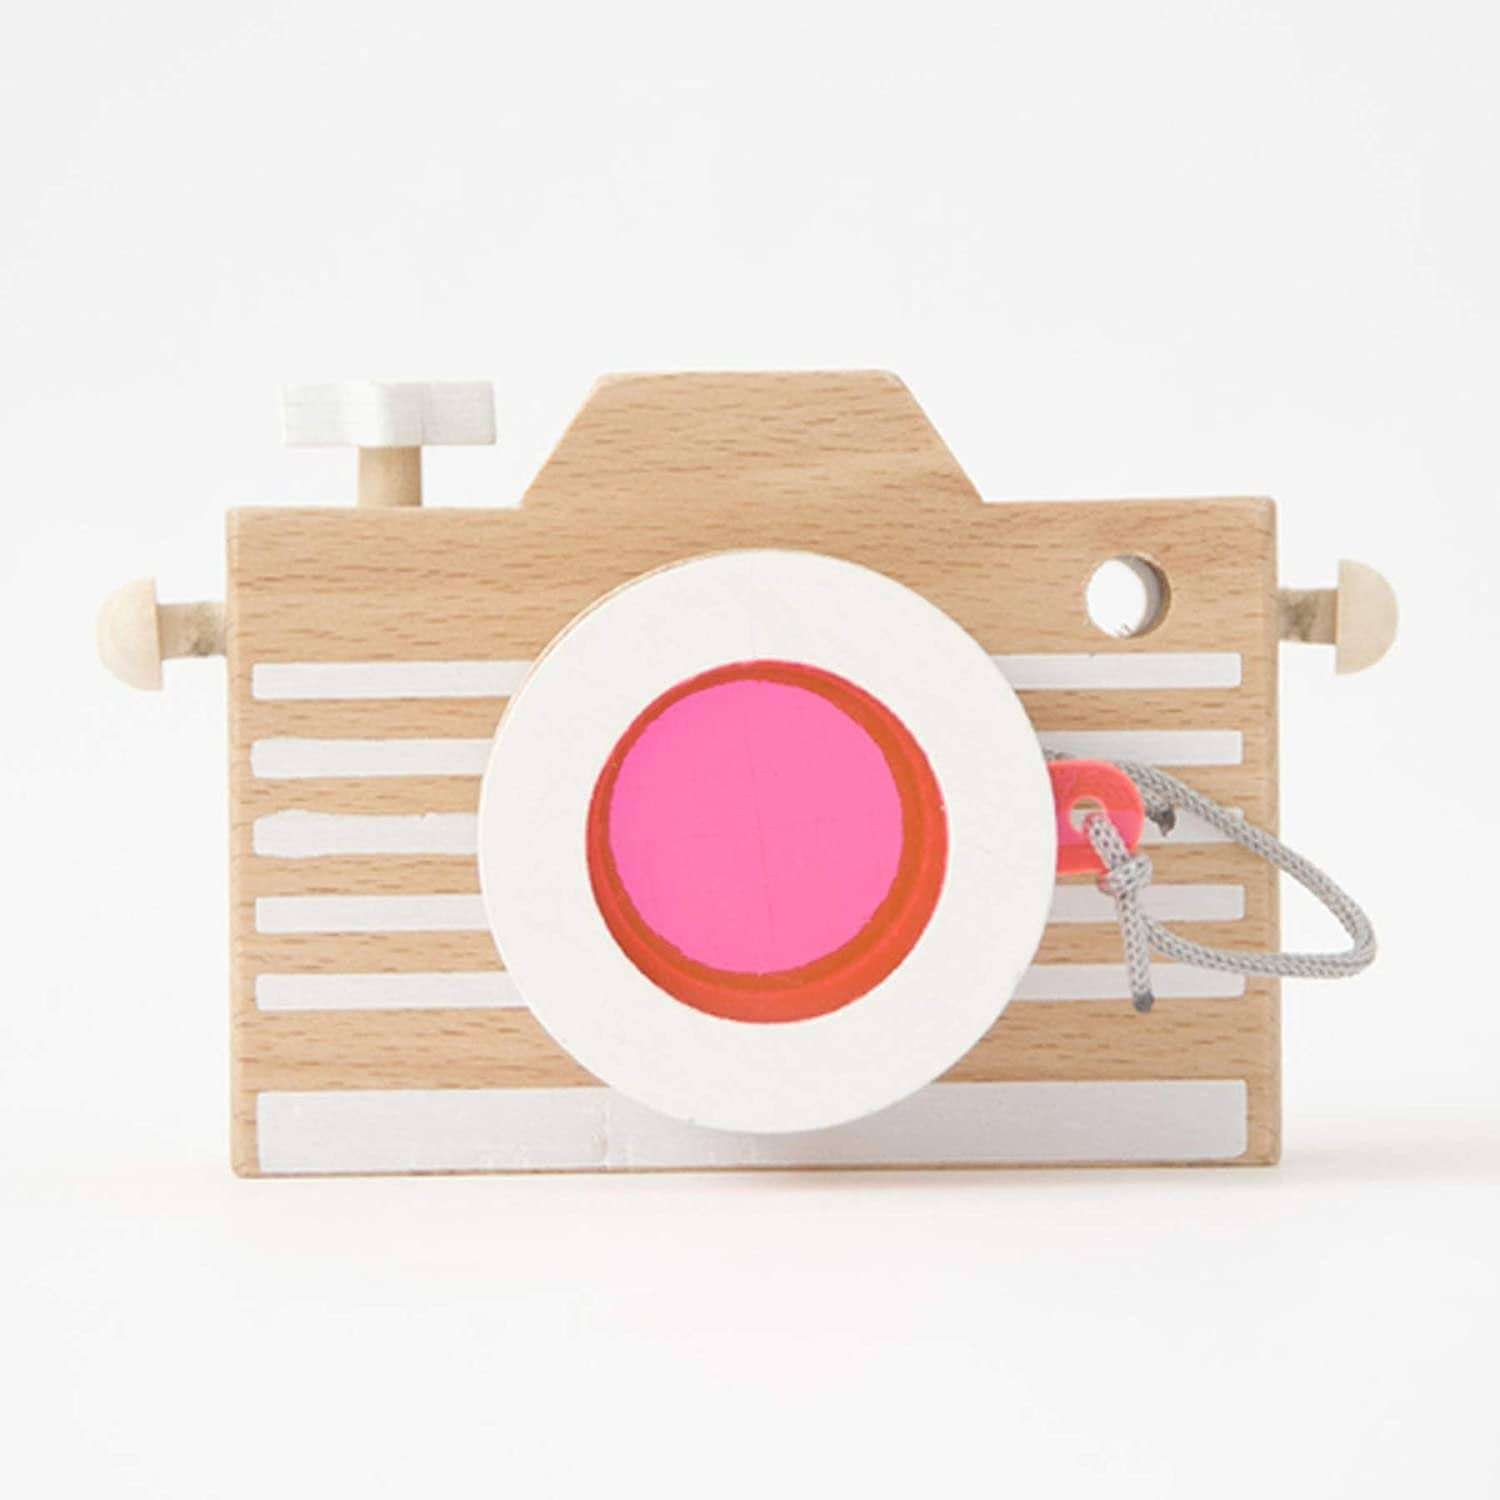 kiko+ Kaleidoscope Wooden Camera | Amazon